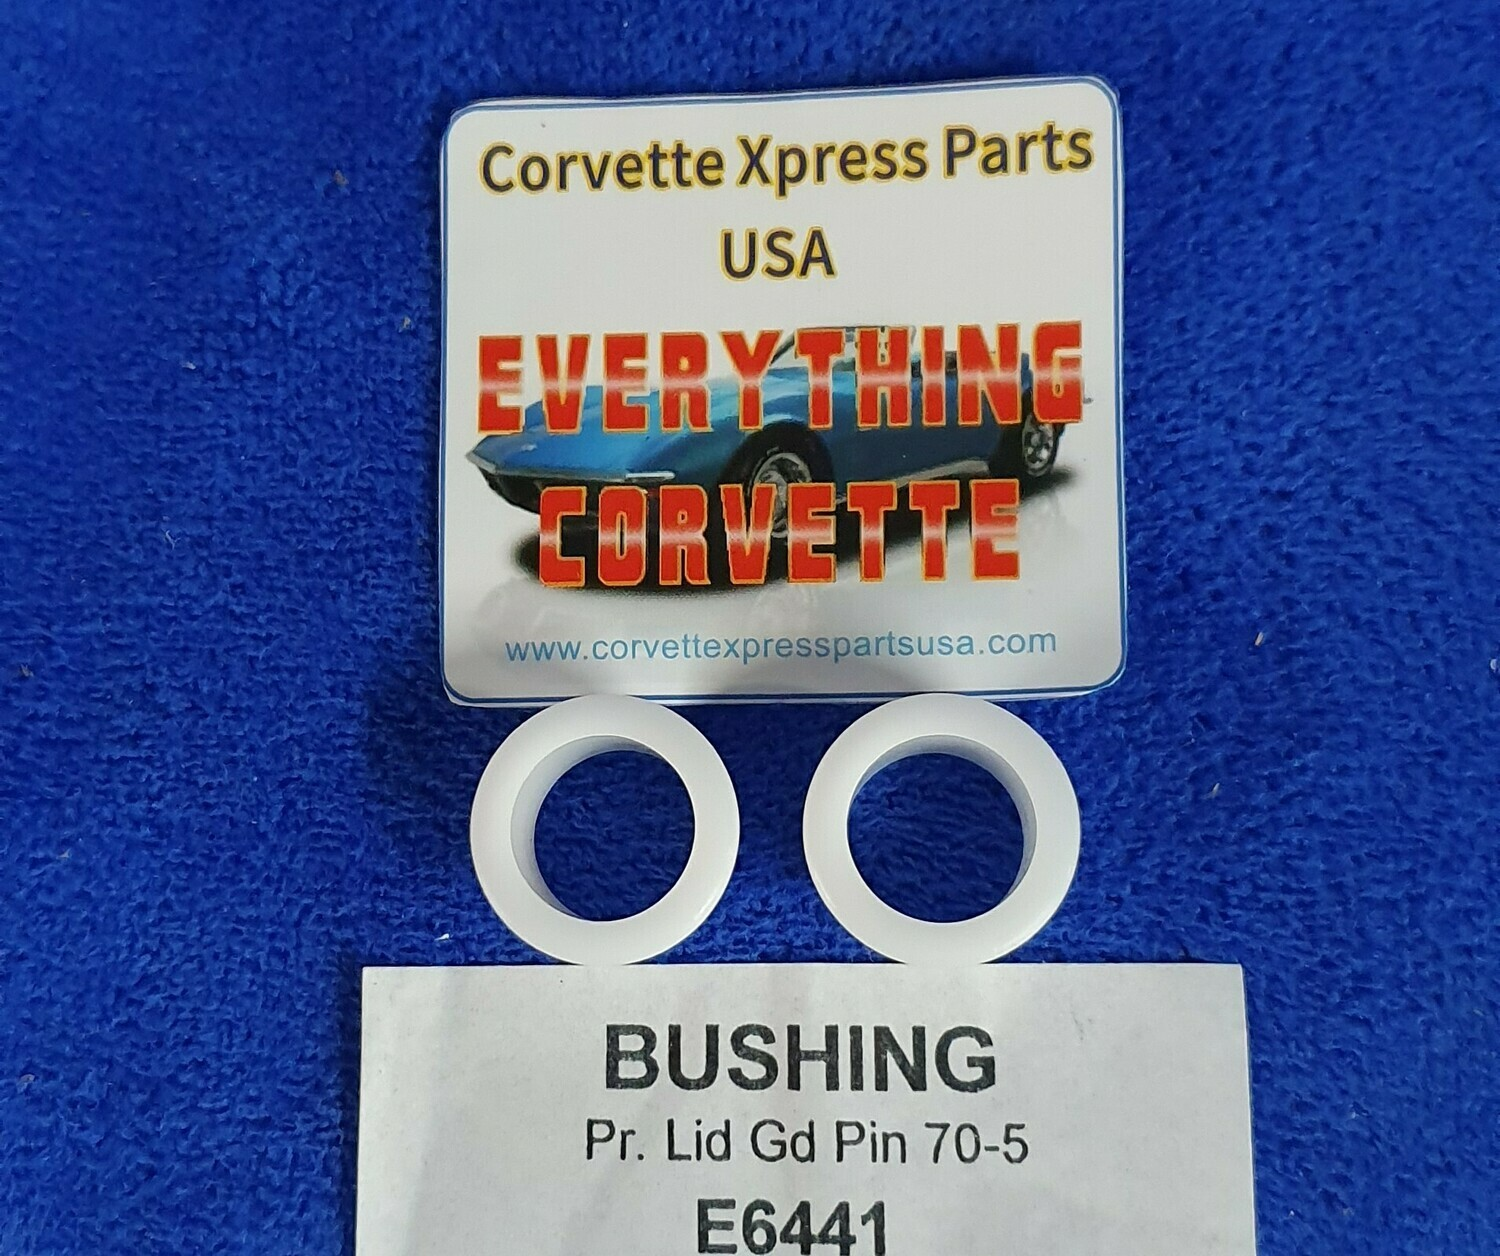 BUSHING-REAR DECK LID GUIDE PIN-PAIR-70-75 (#E6441)